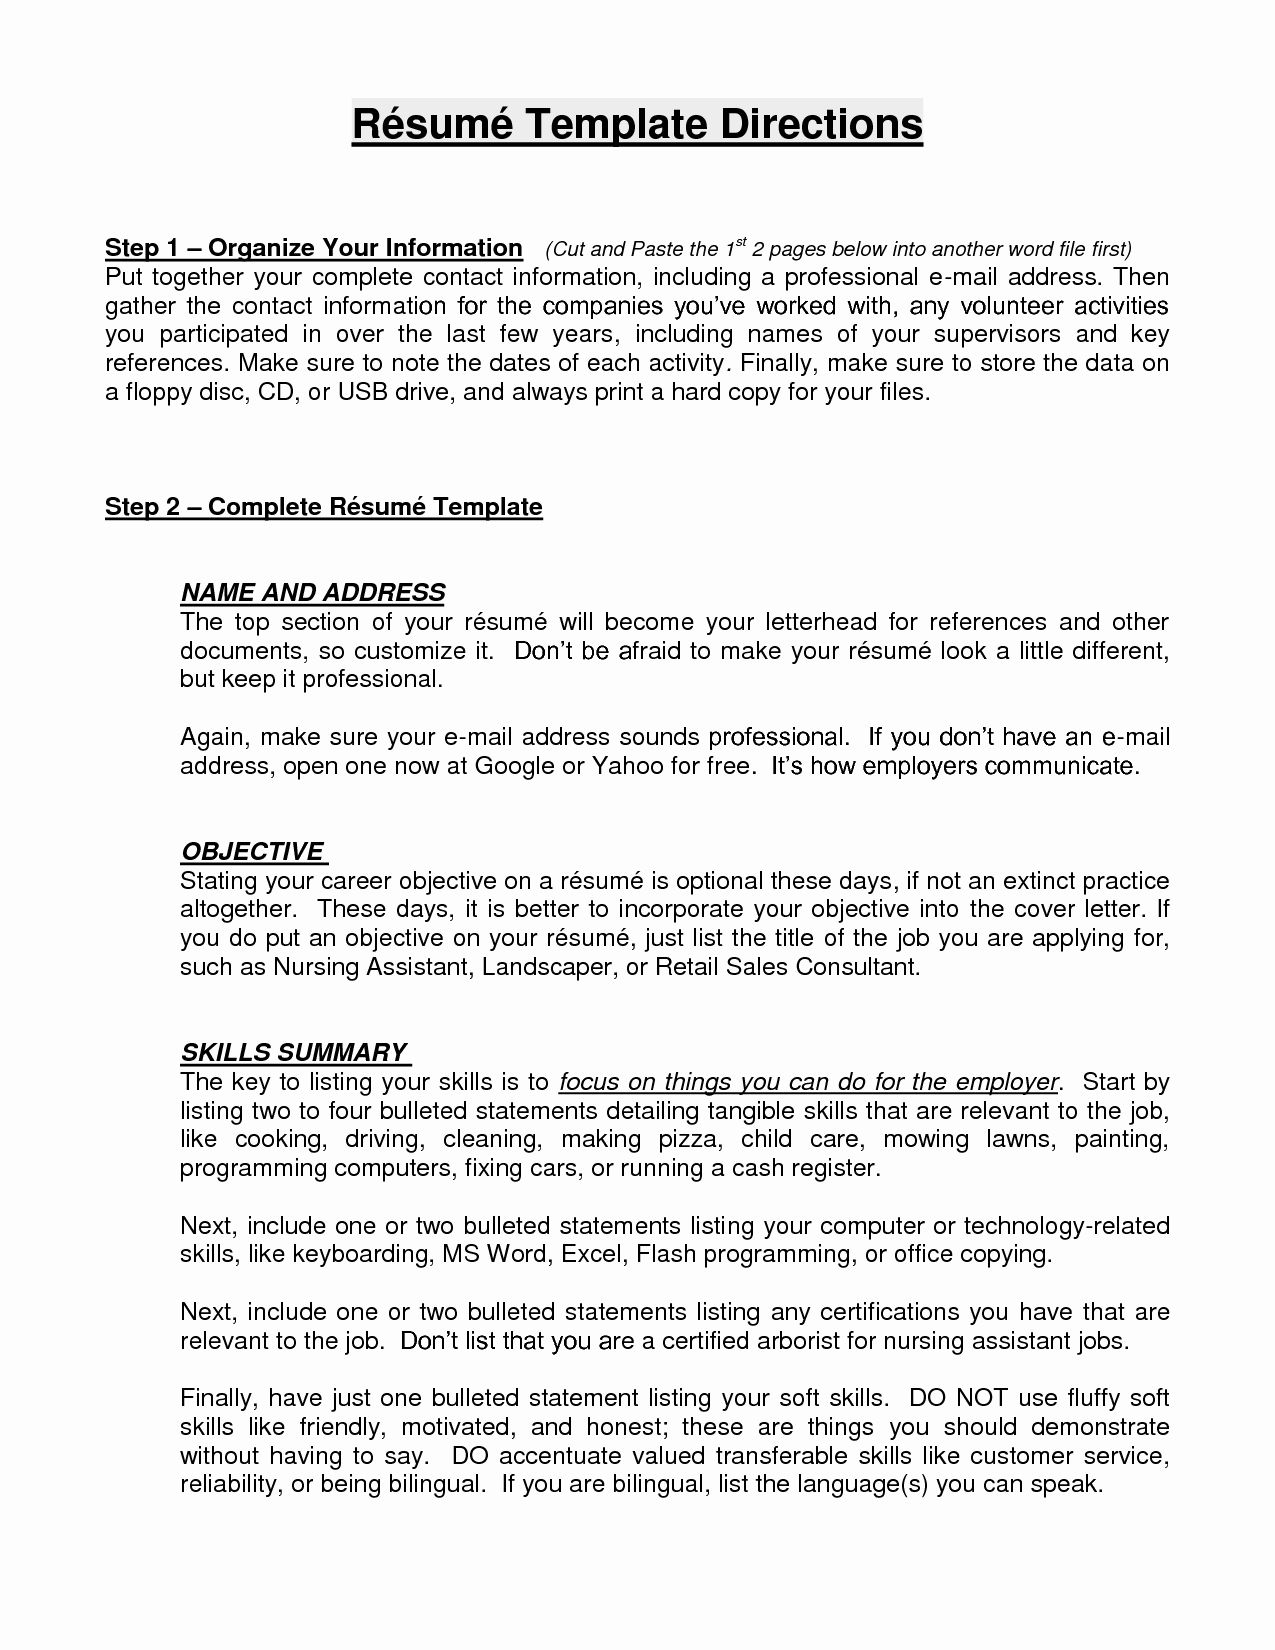 Army Computer Engineer Cover Letter Employers Prefer 3 Resume Format Resume Objective Examples